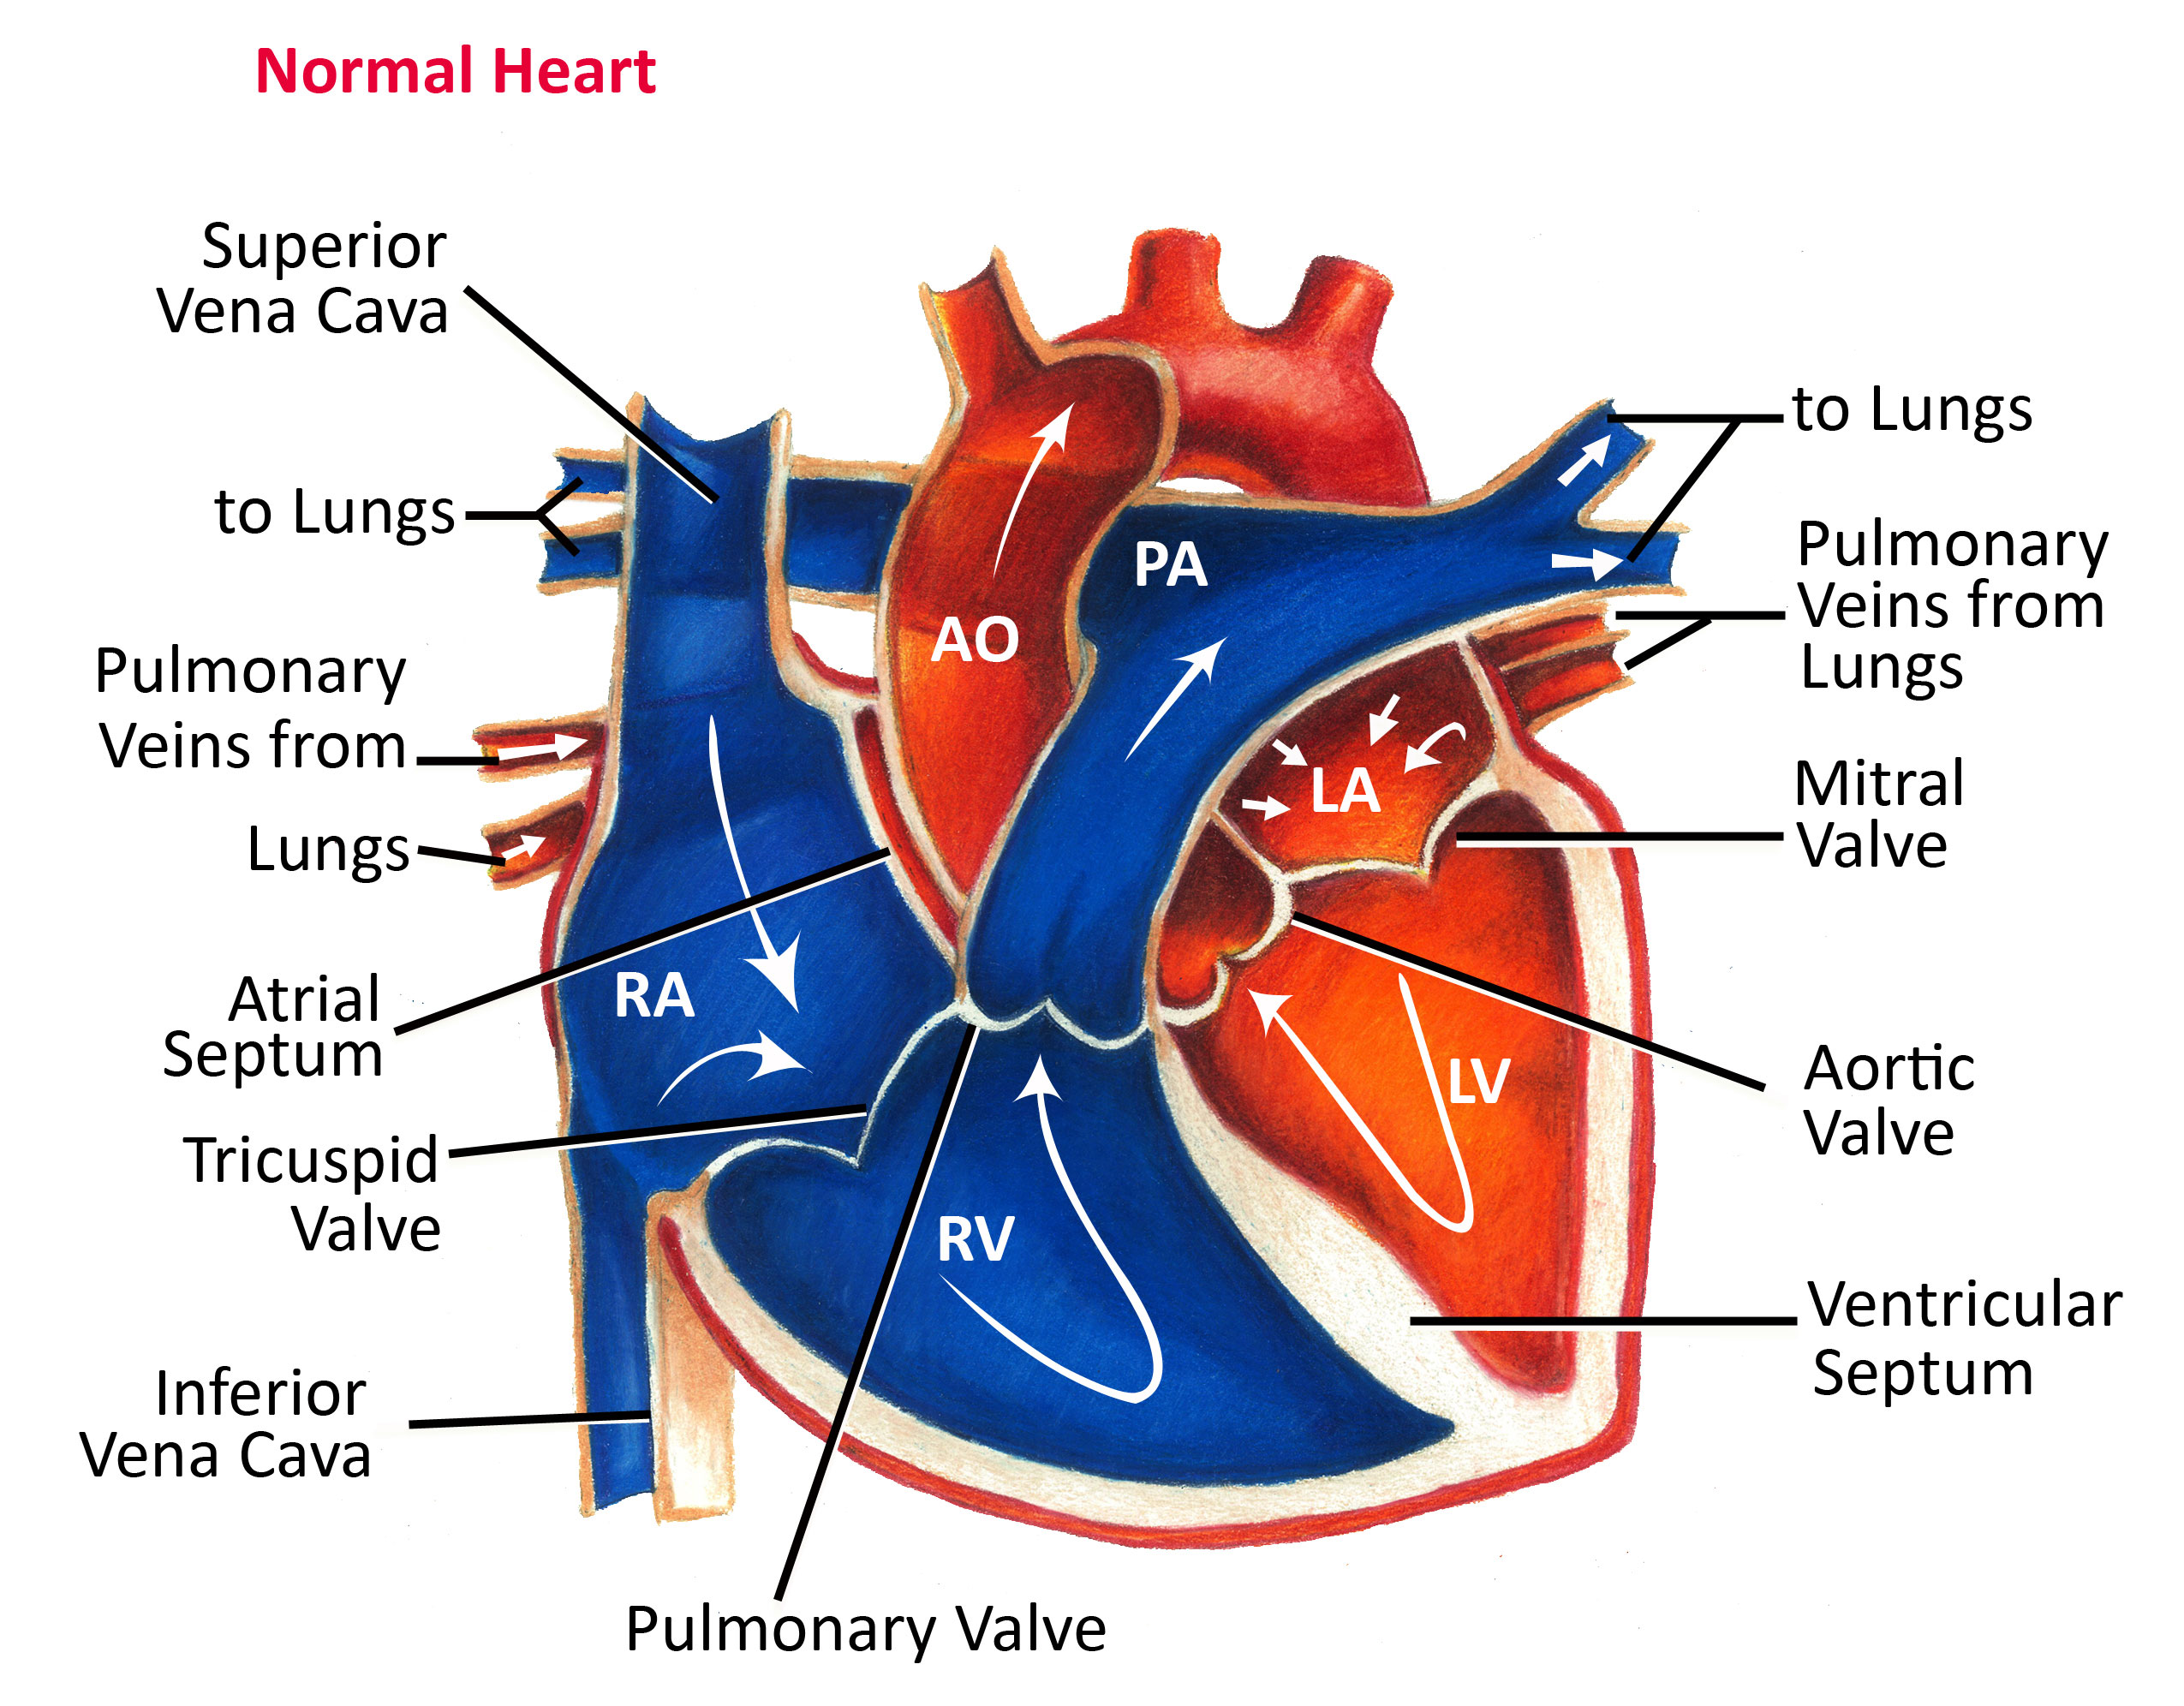 Normal Heart Anatomy and Blood Flow - Pediatric Heart Specialists